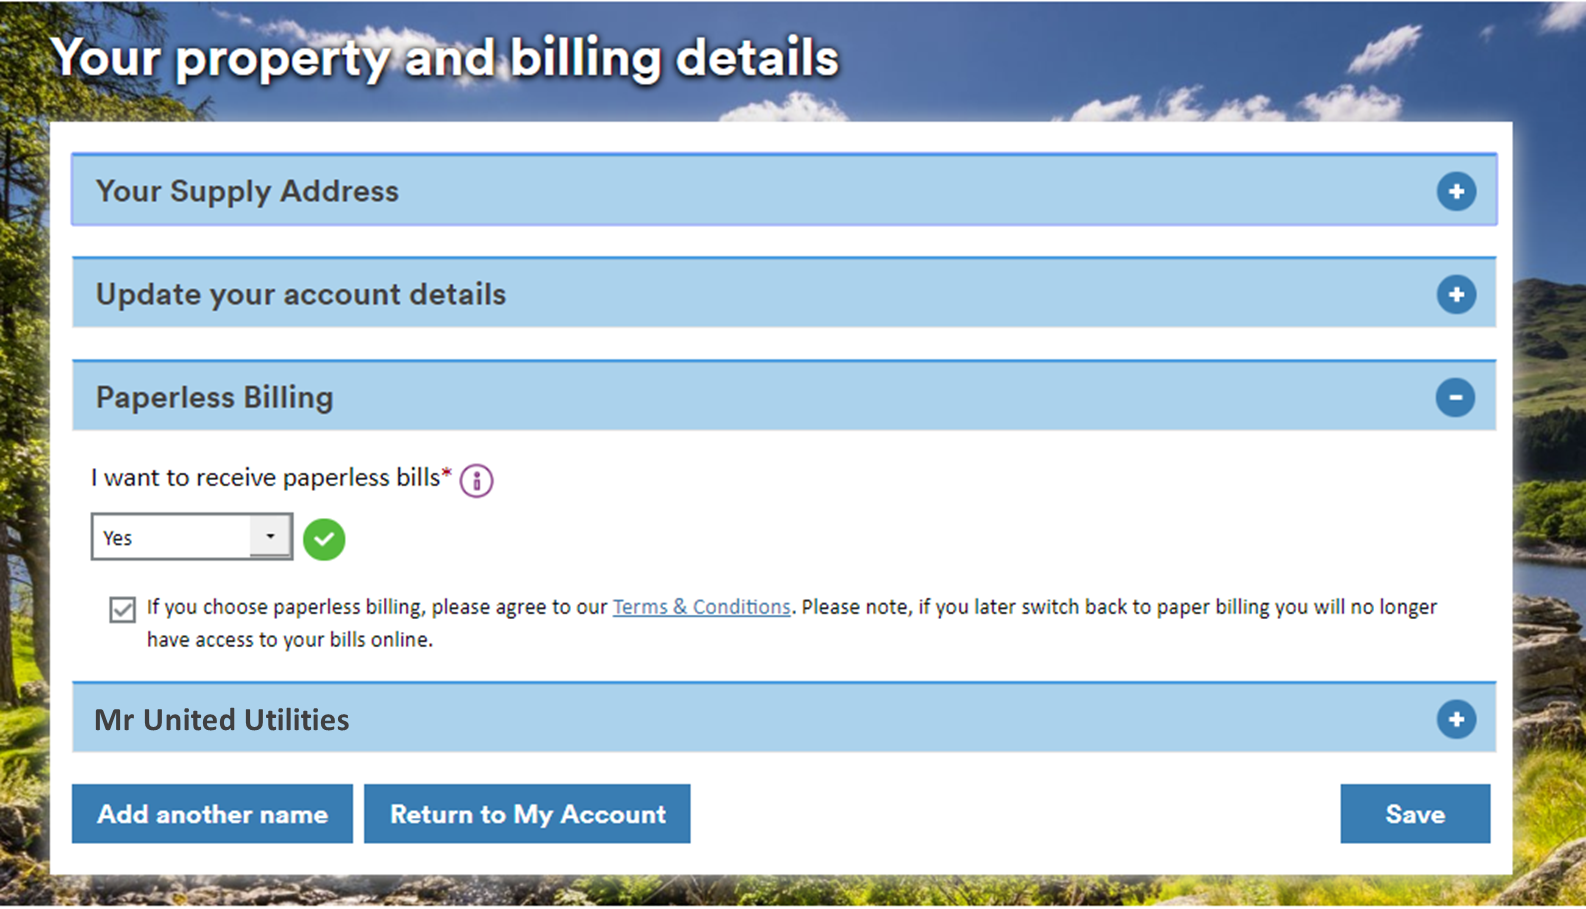 Screenshot of the 'My property and billing details' page in My Account